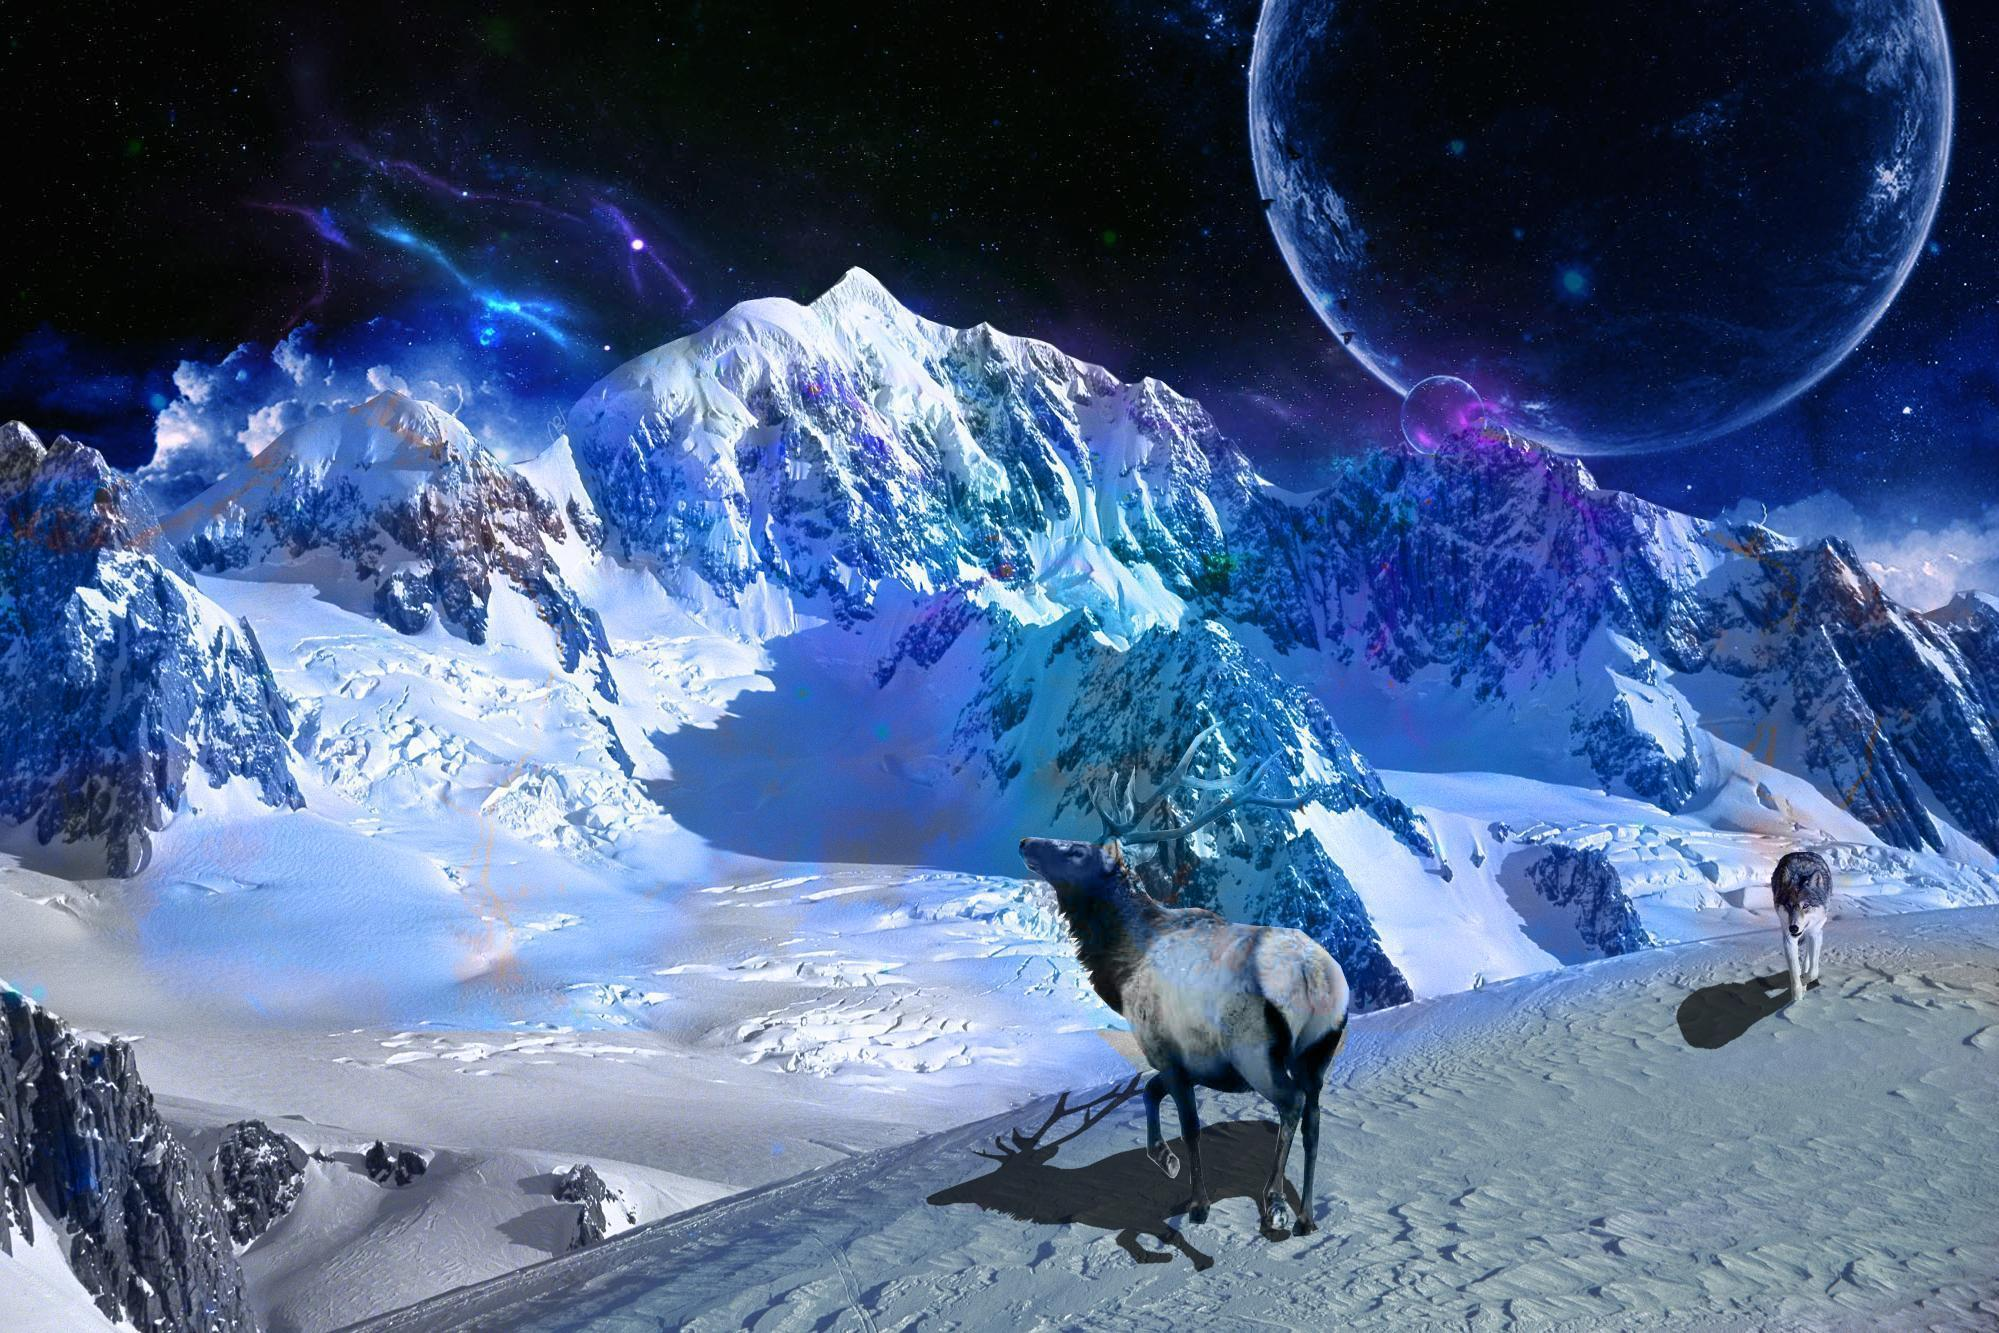 Space Snow Mountain Wallpapers